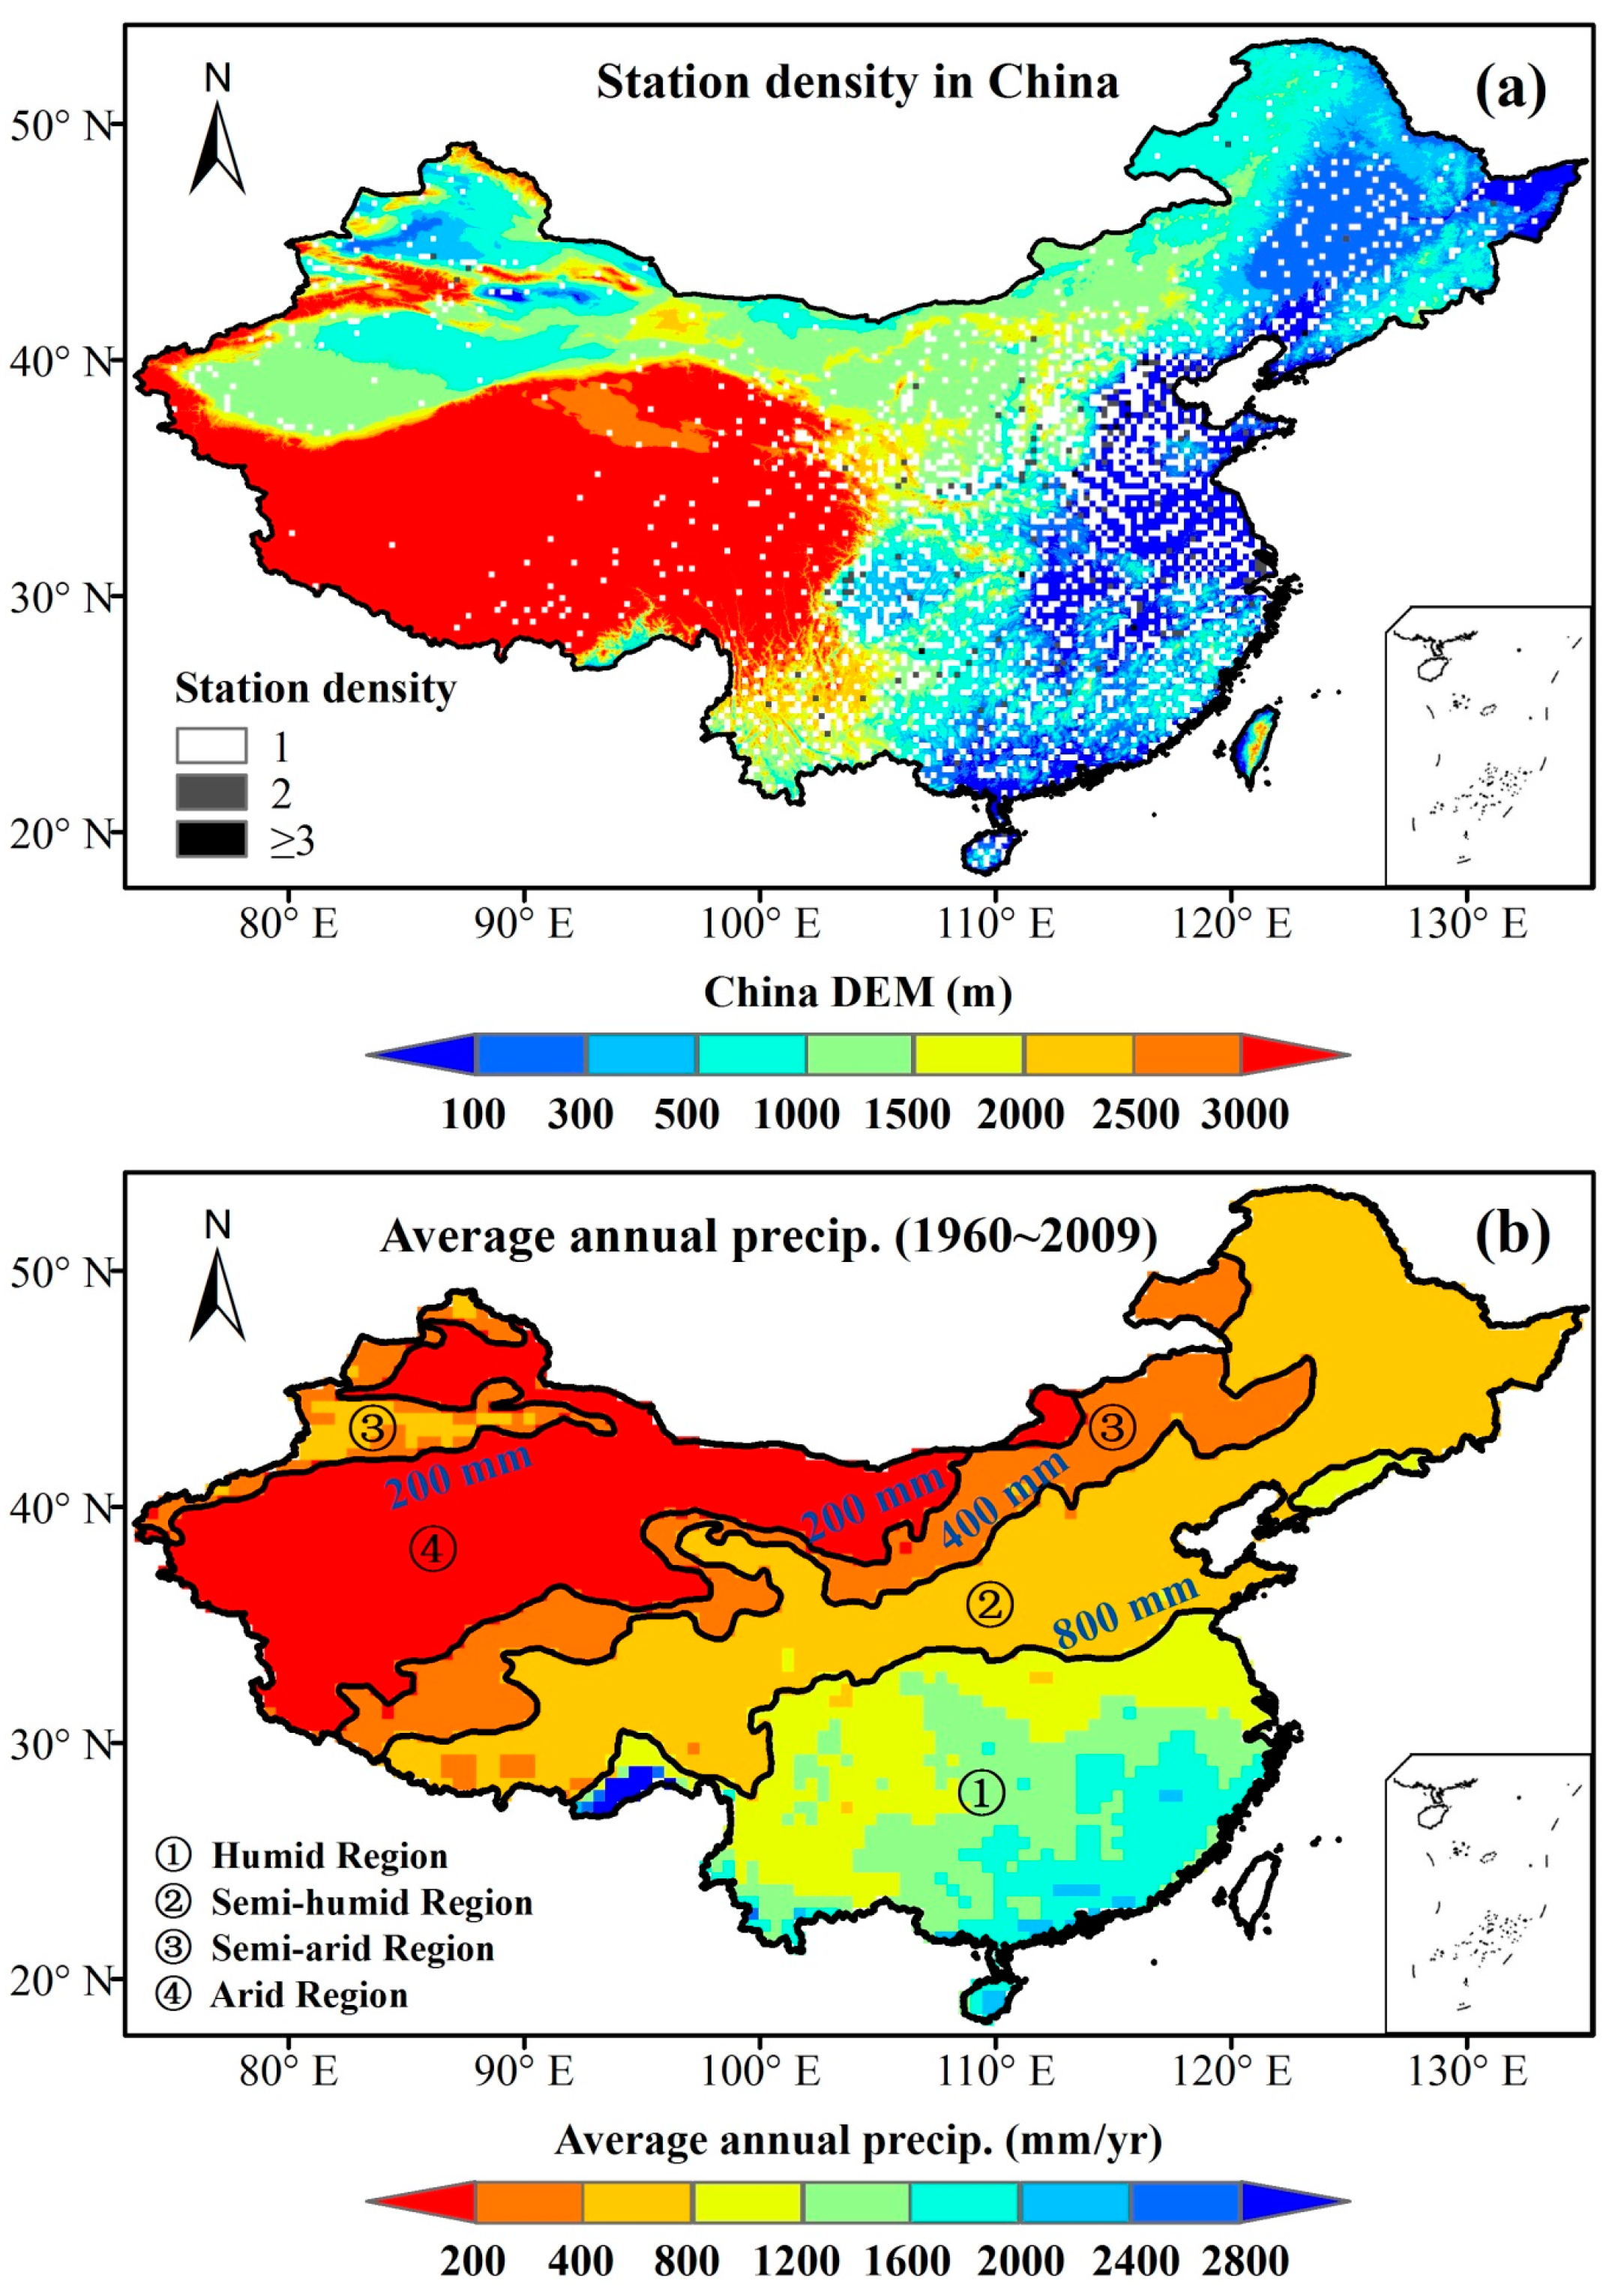 Remote Sensing   Free Full-Text   Error-Component ysis of TRMM ... on map of the republic of china, map of geography china, matsu islands, map of korea and china, latest entertainment news china, map of smog in china, map of southern china, old world map china, map of south china sea, chinese civil war, mountain ranges map of china, south china sea, map of india and china, map of china ports, map of china with cities, shenzhen china, hong kong and mainland china, map of communist china, map of population density china, flag of japan and china, hong kong island china, chinese in china, sixty-four villages east of the river, map of southeast china,